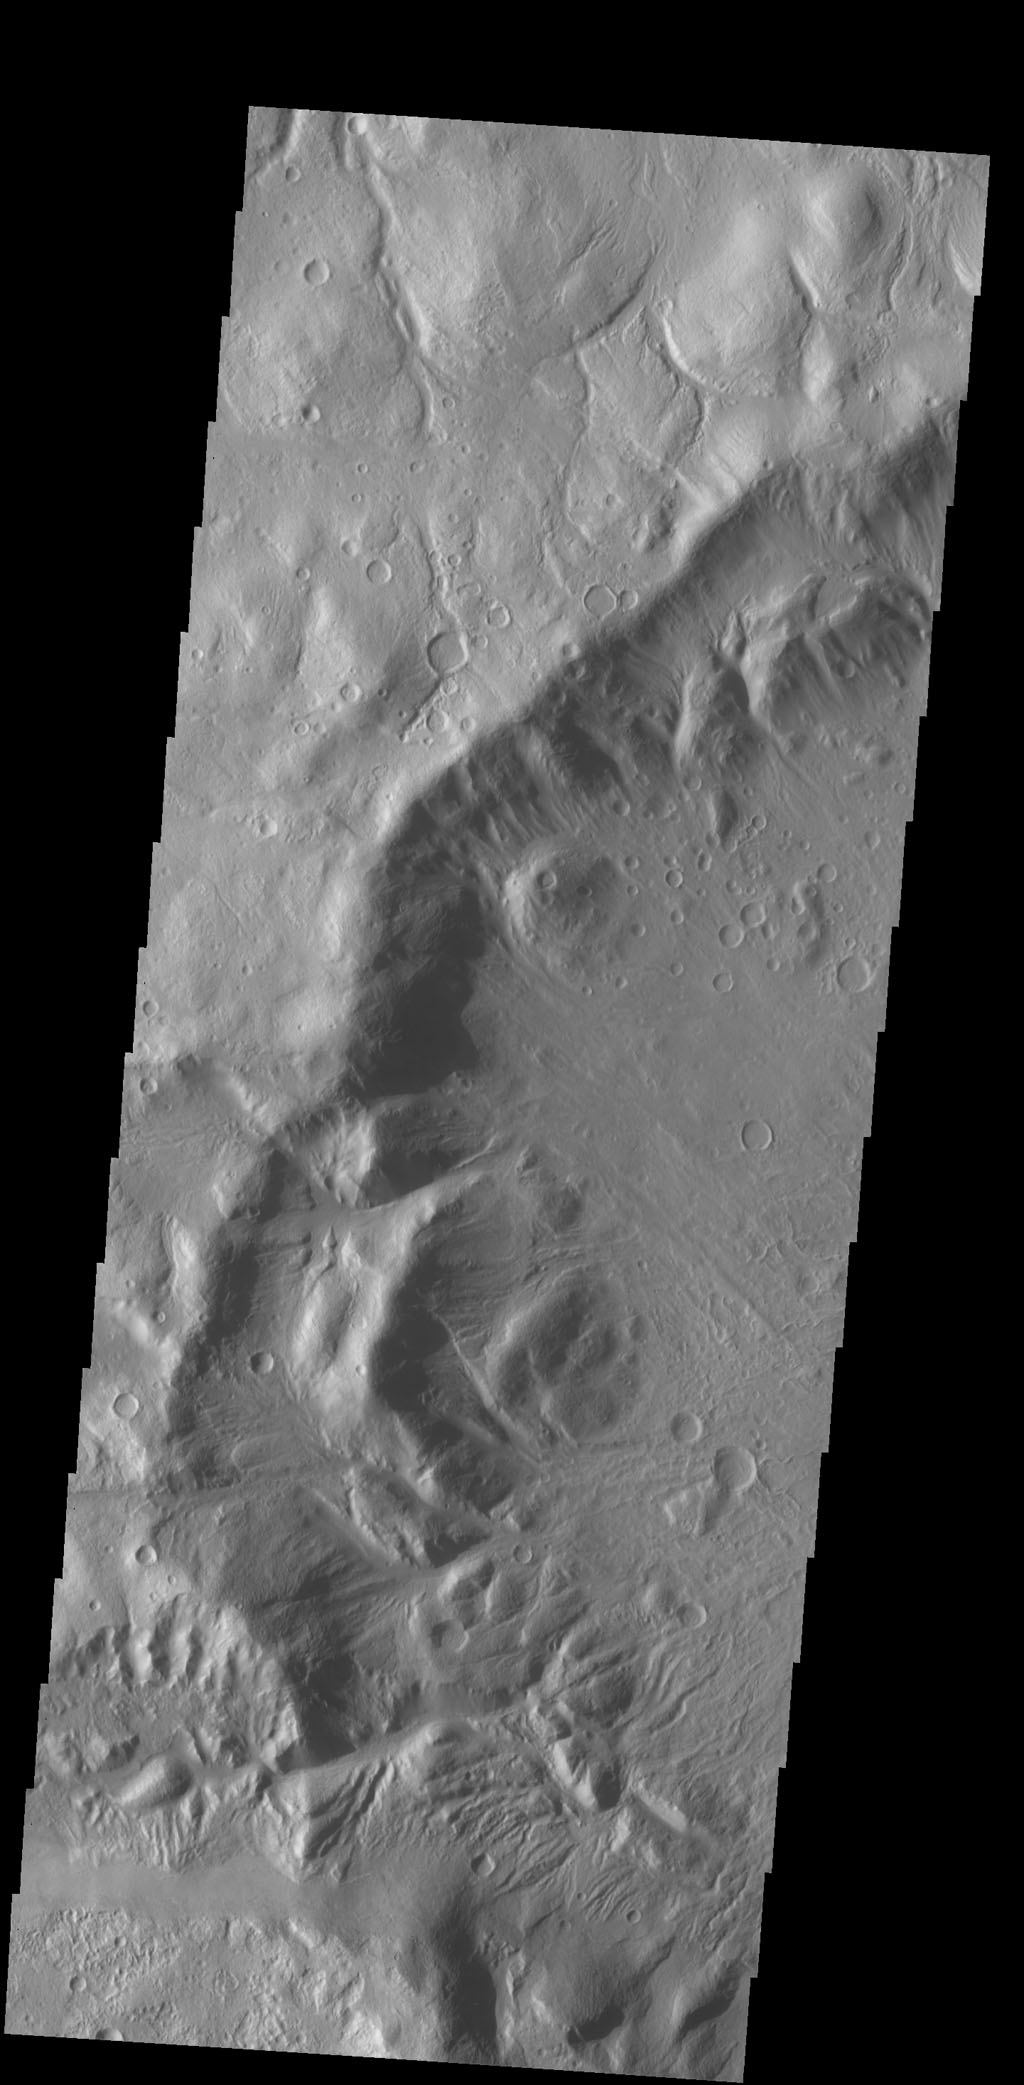 Numerous channels dissect the rim of this large crater located on Acheron Fossae as seen by NASA's 2001 Mars Odyssey spacecraft.